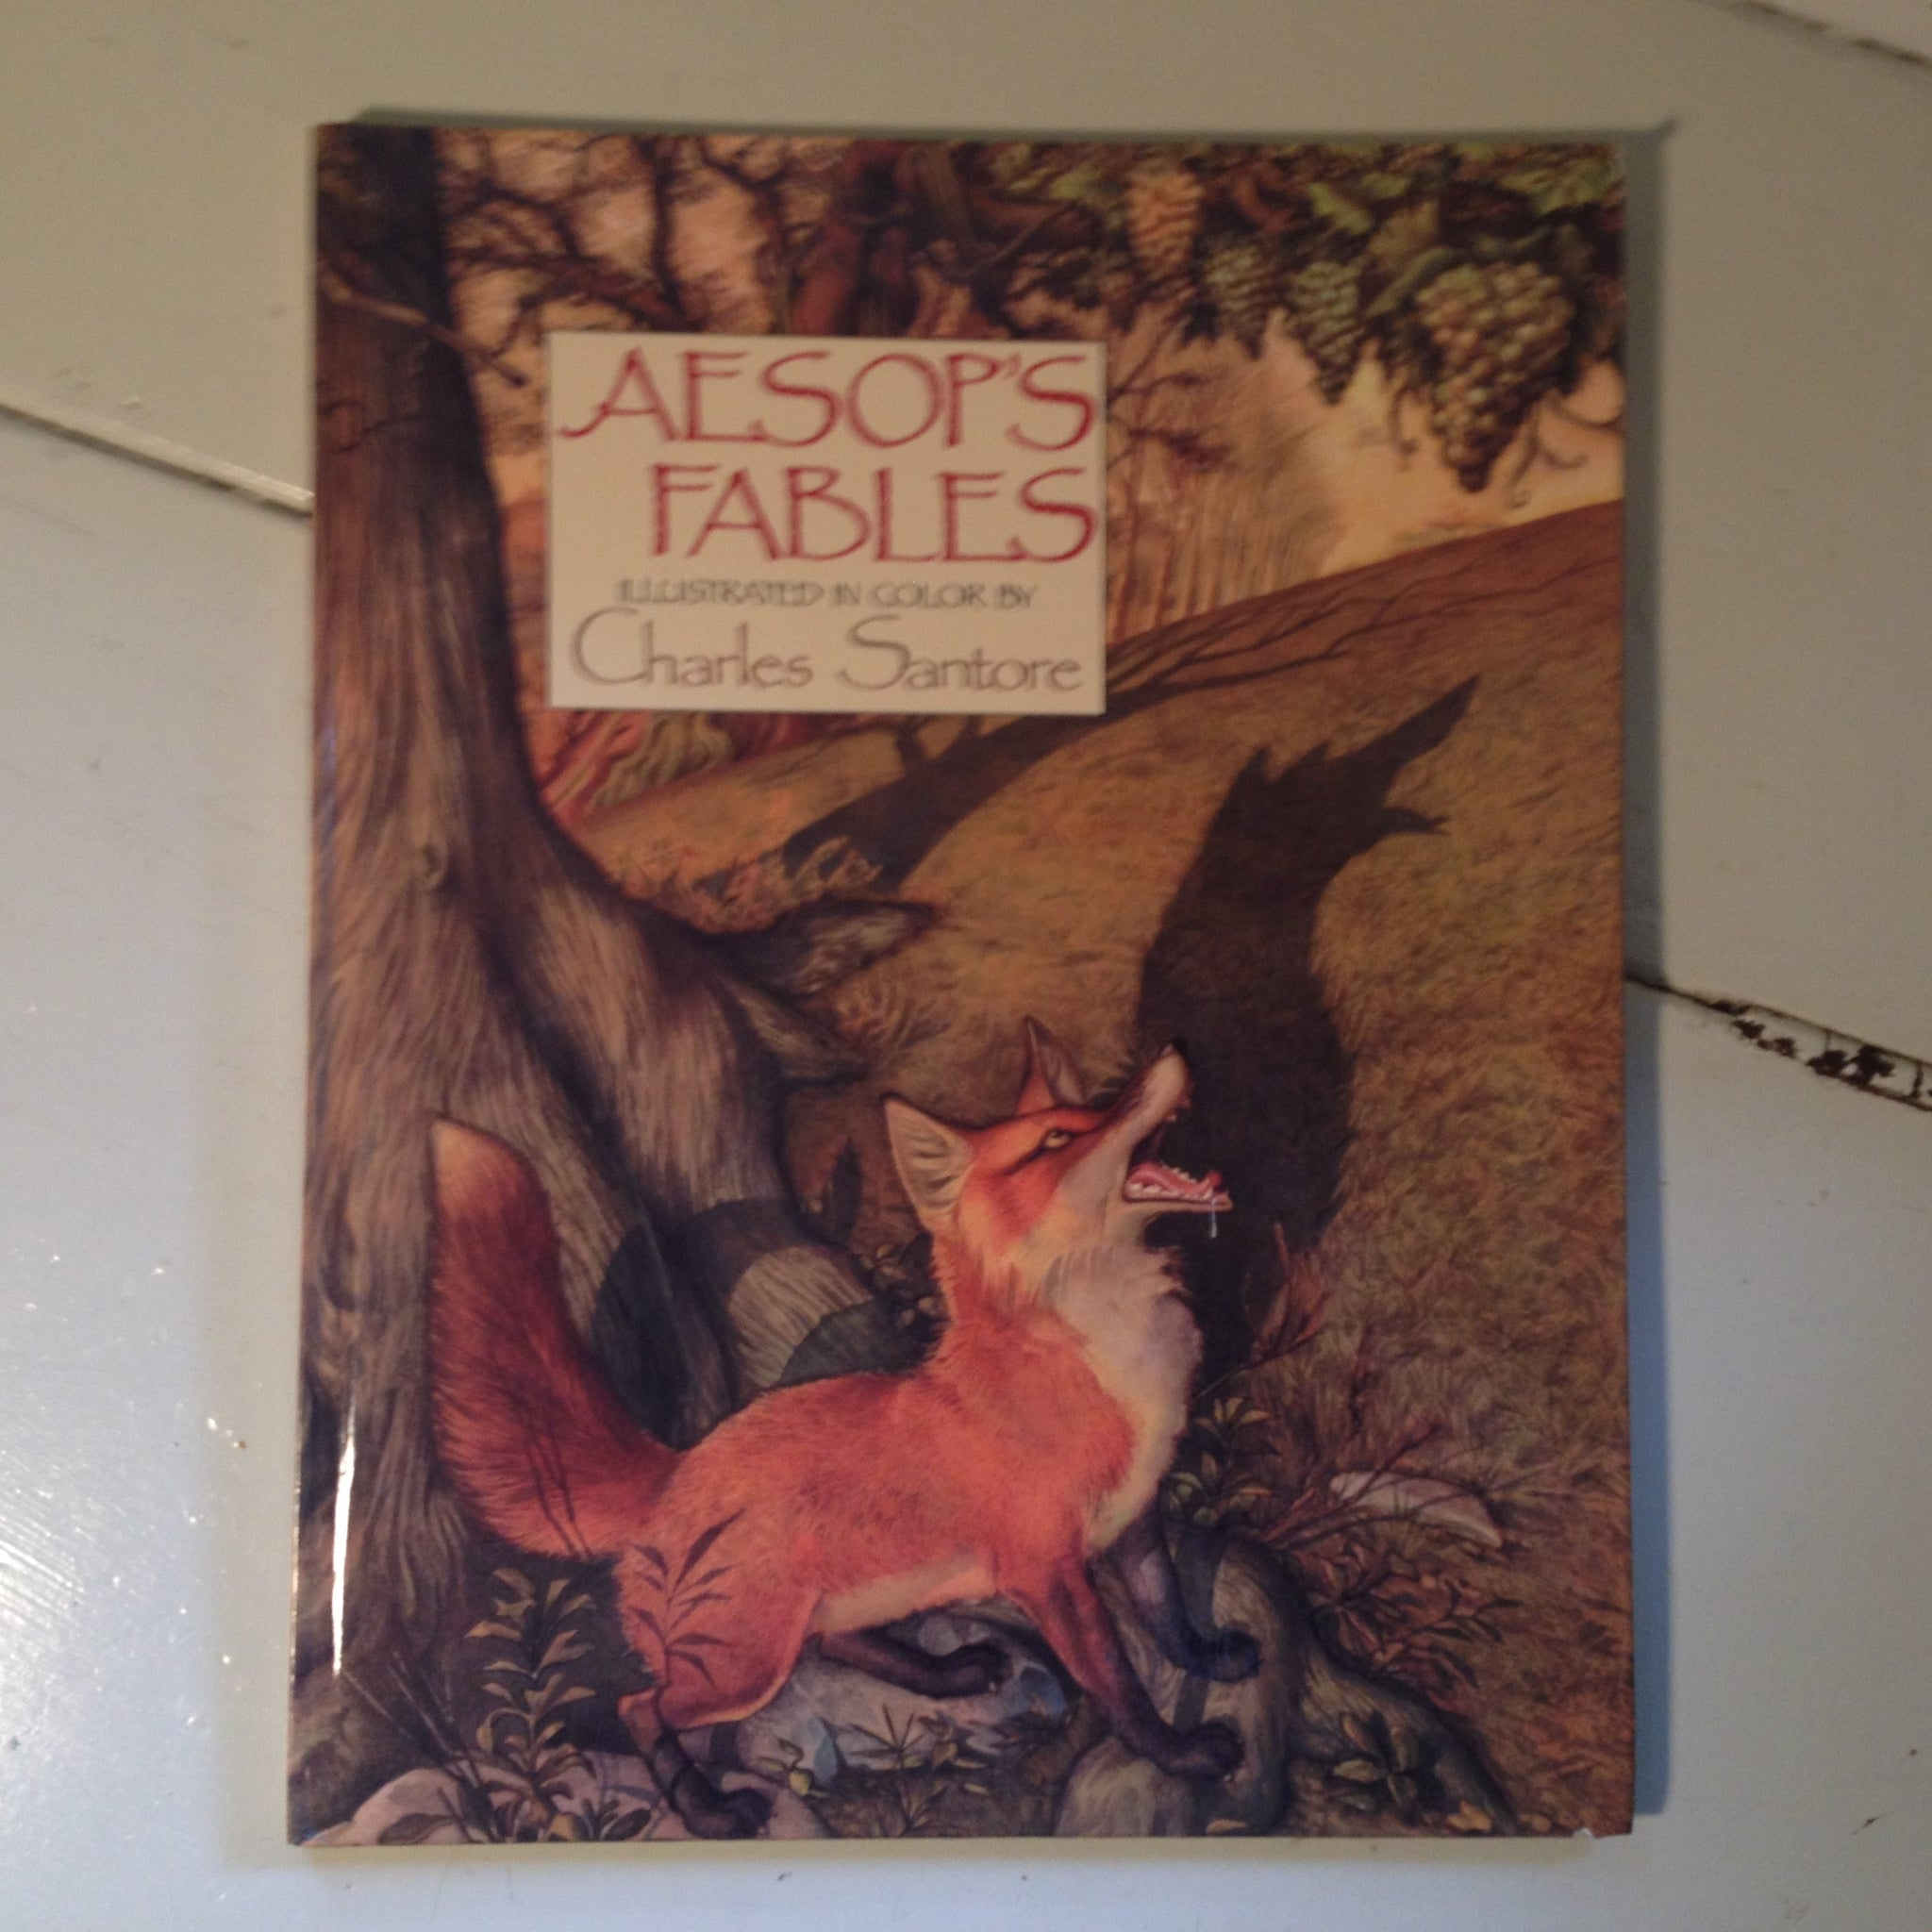 Aesop's Fables Illustrated in Color By Charles Santore